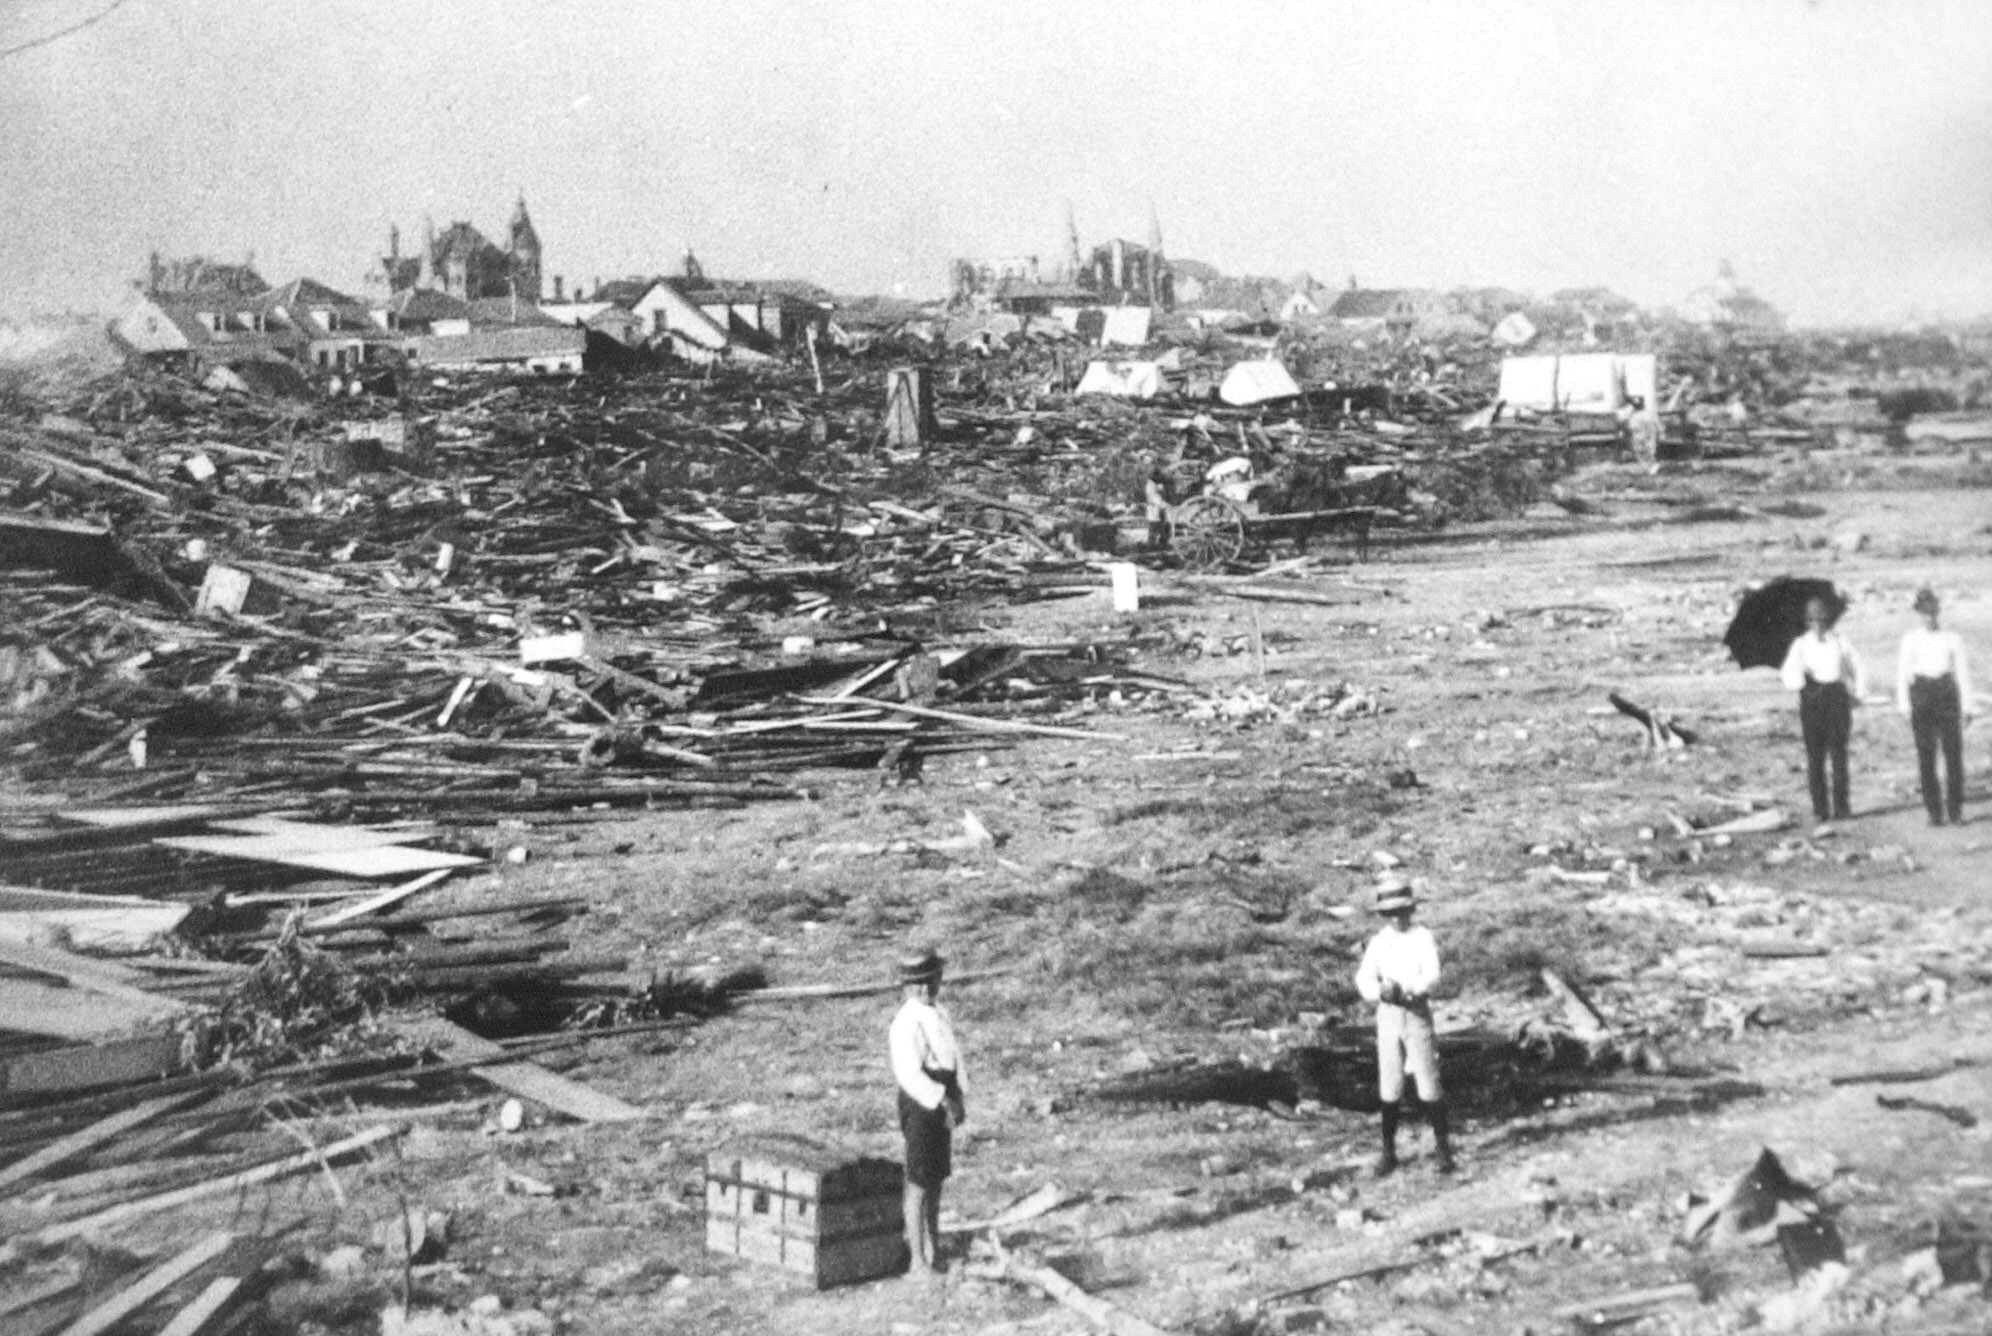 Looking Back At The 1900 Hurricane That Wiped Out Galveston And Made It Stronger In The Long Run Galveston Hurricane Galveston Hurricane History